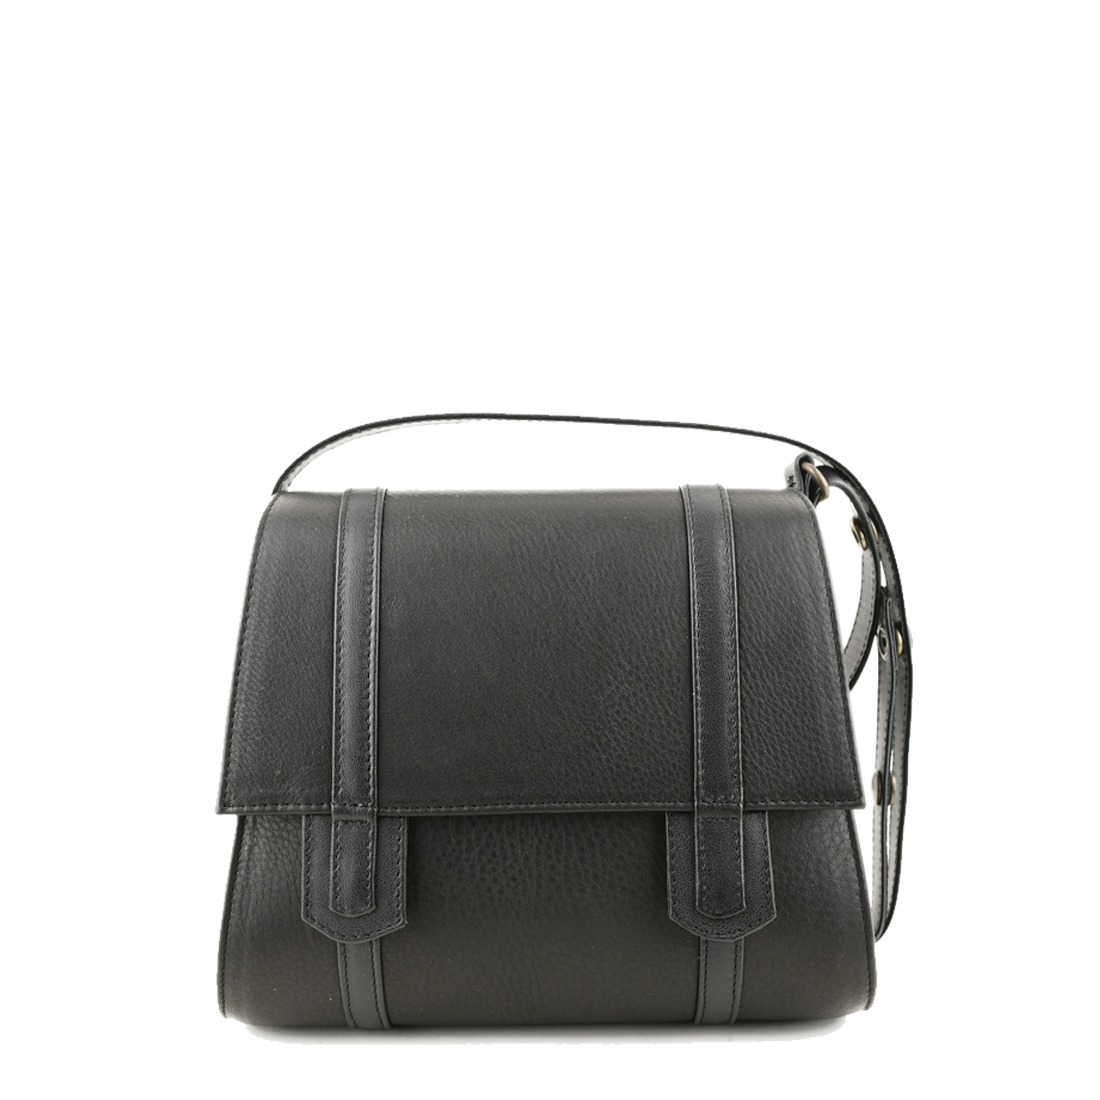 Chloe Black Across Body Leather Bag